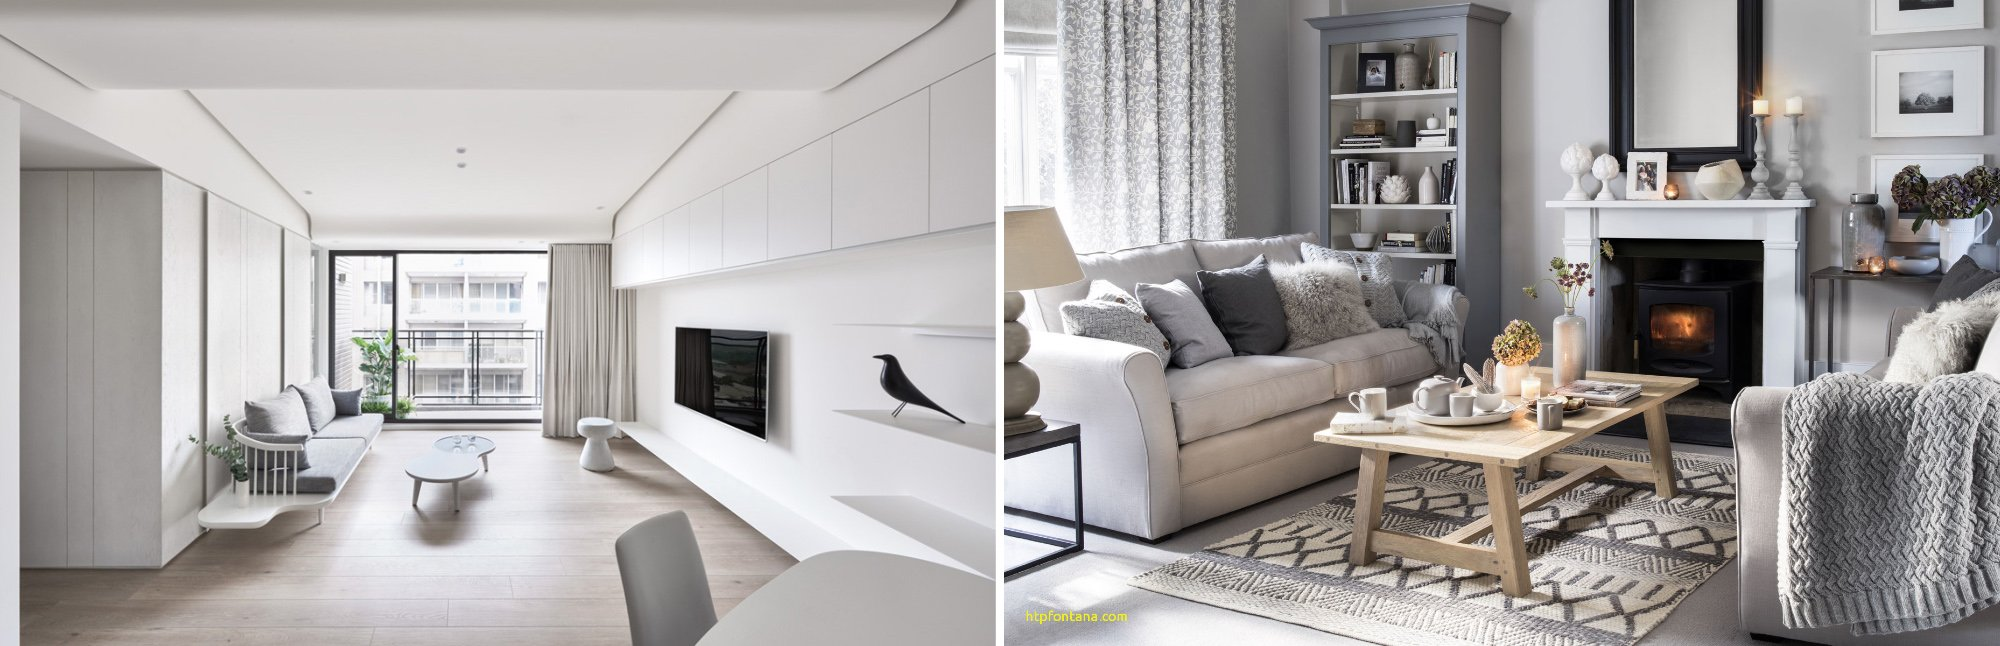 Minimalist or cosy Costa Blanca Interior Design